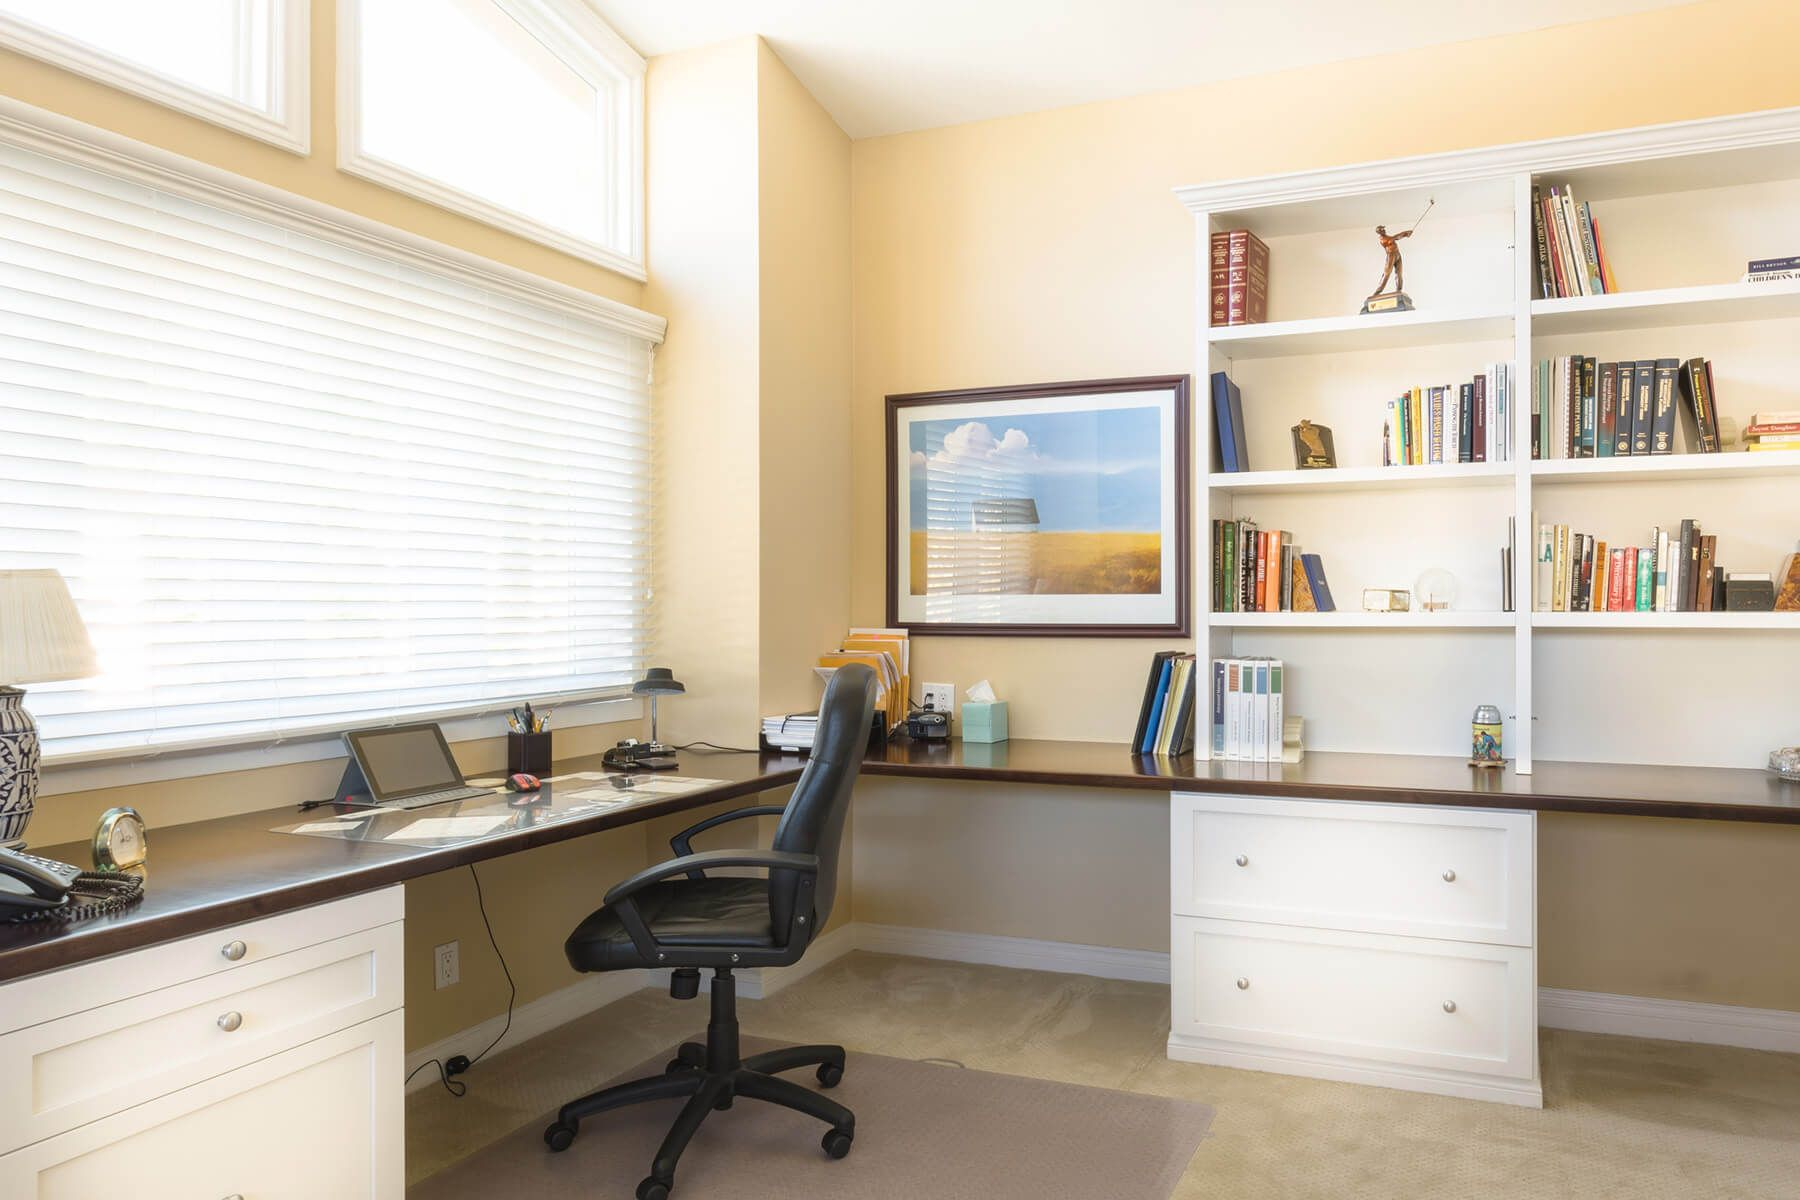 51 Really Great Home Office Ideas Photos Home Office Design